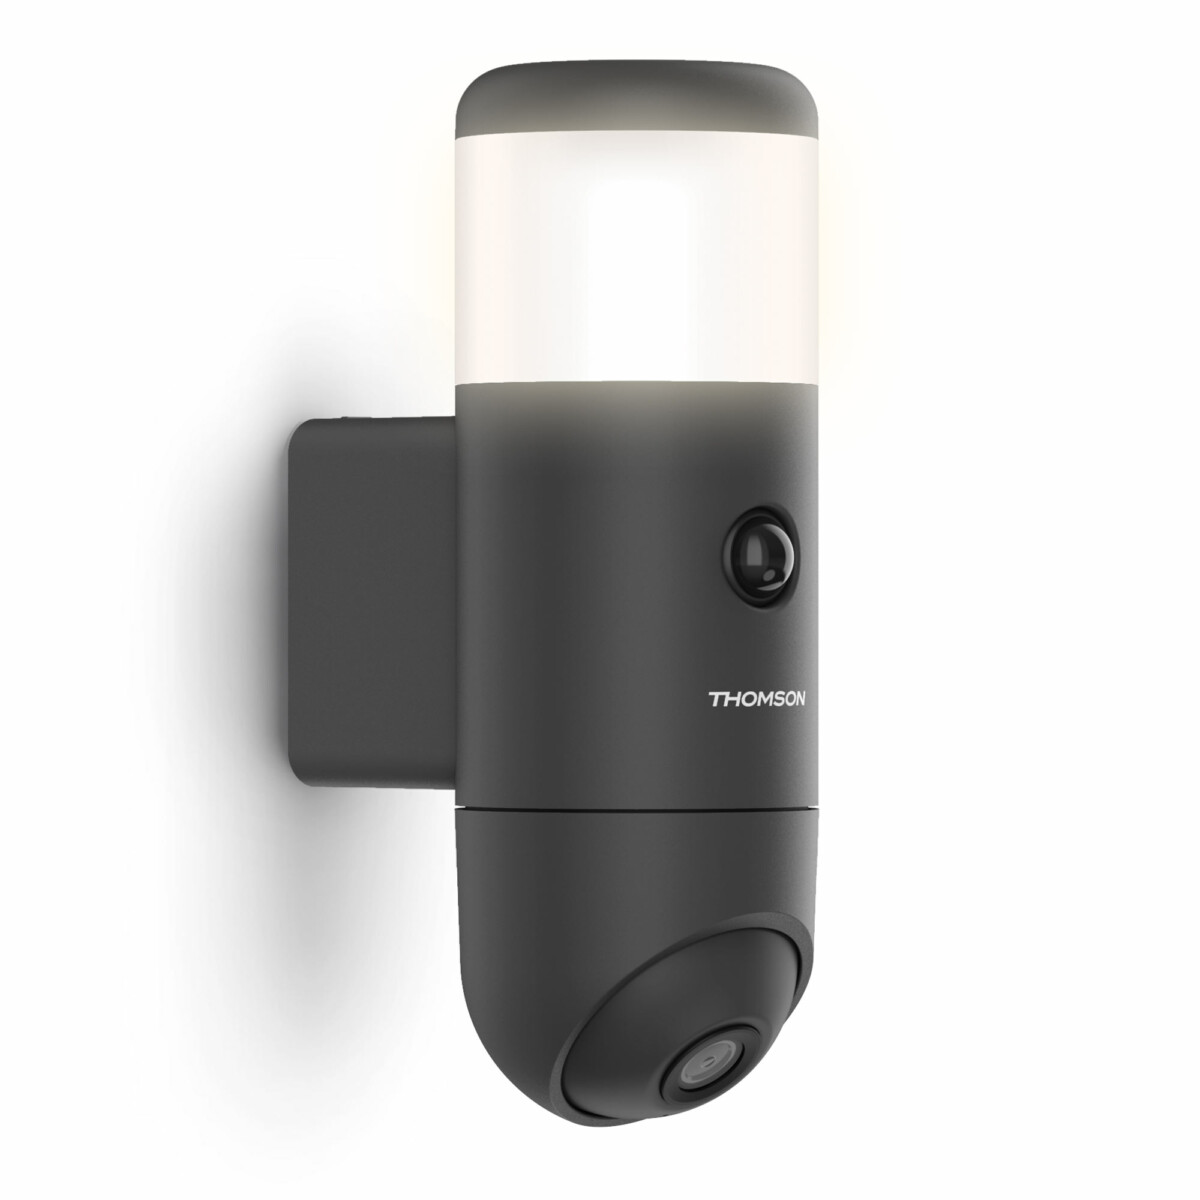 The Thomson Rheita 100 outdoor surveillance camera is also lighting